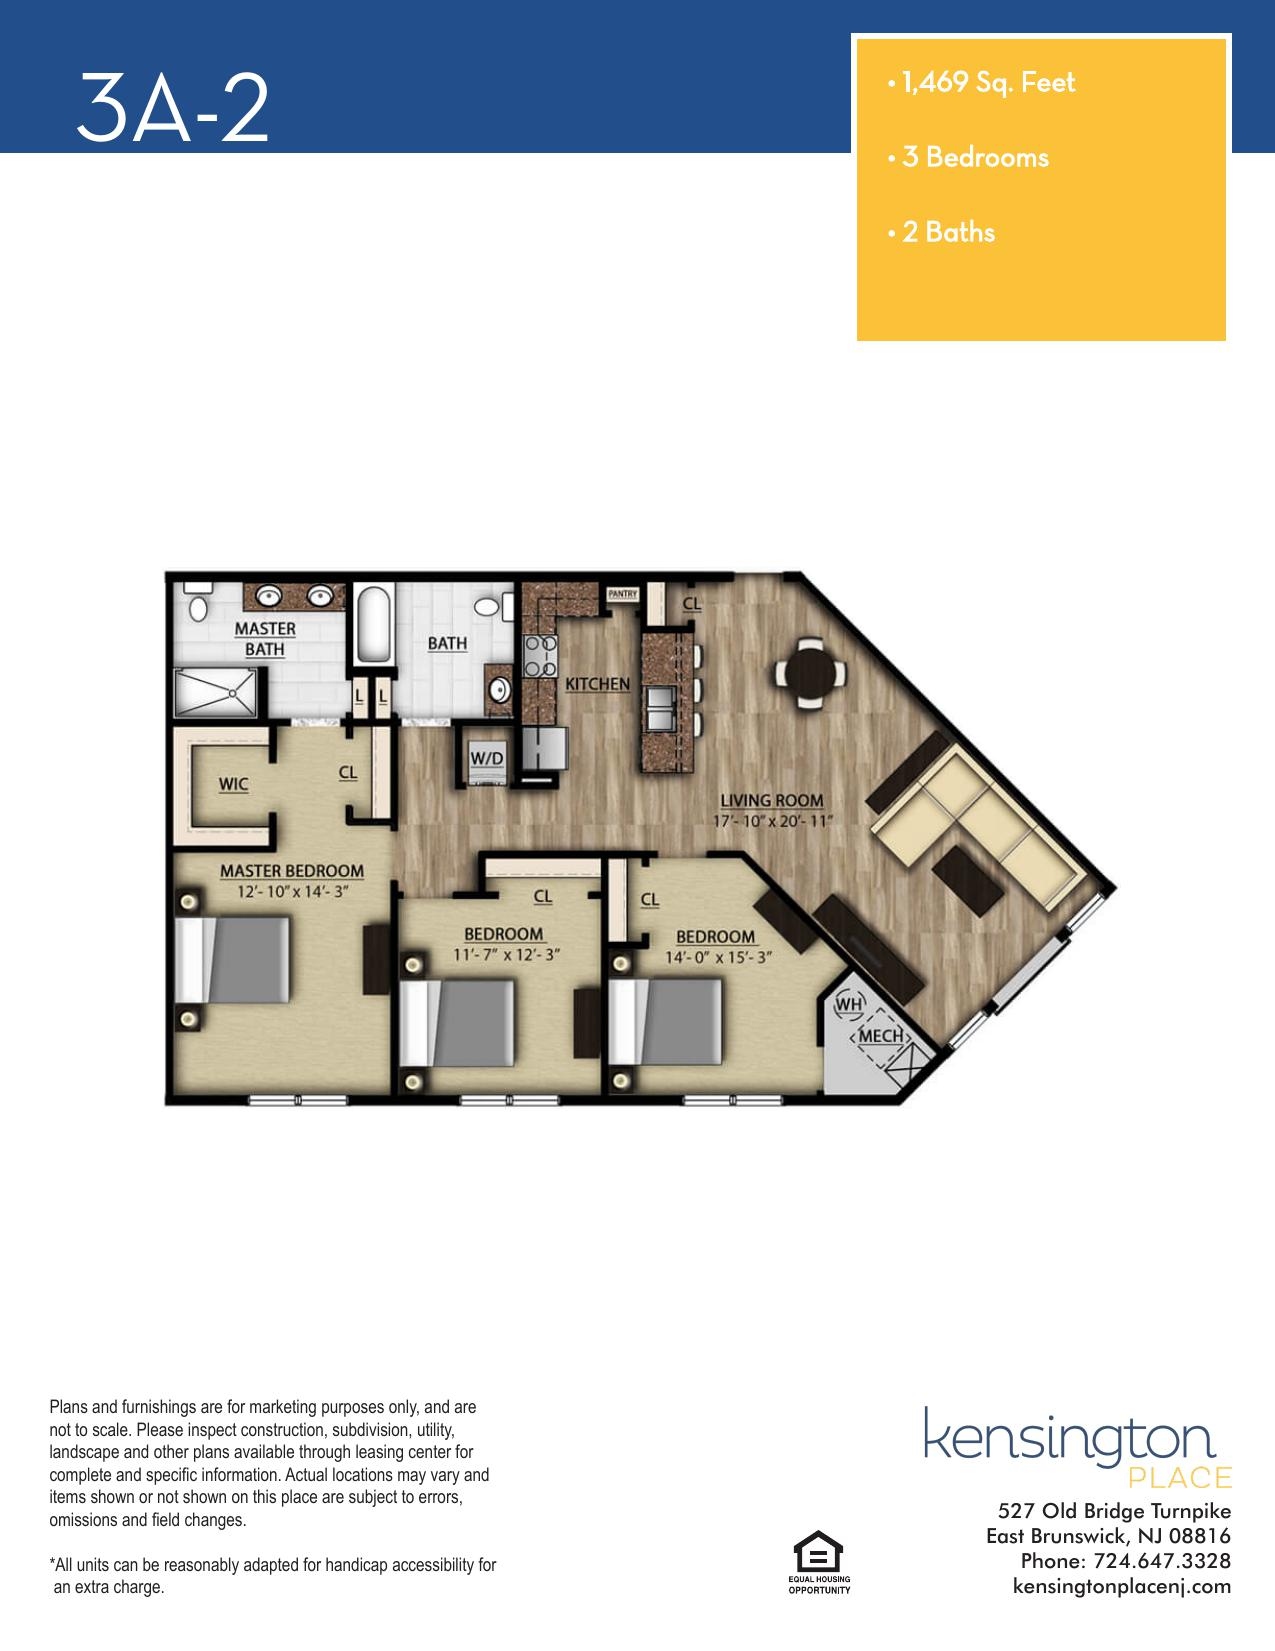 Kensington Place Apartment Floor Plan 3A2